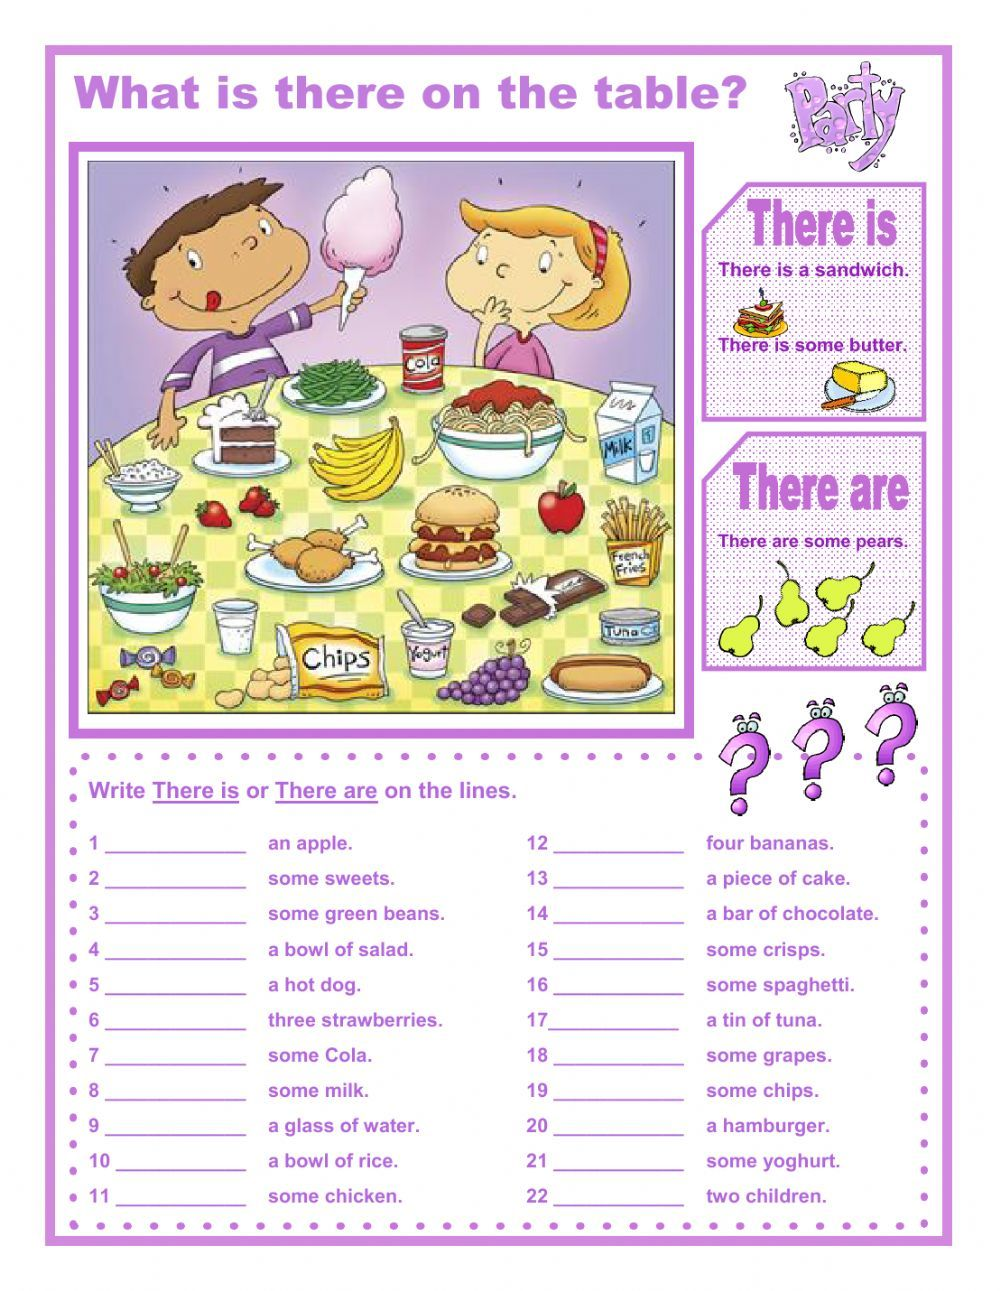 There Is There Are Interactive And Downloadable Worksheet Check Your Answers Online Or Send Them To Your Teacher English Grammar English Vocabulary Teaching English [ 1291 x 1000 Pixel ]